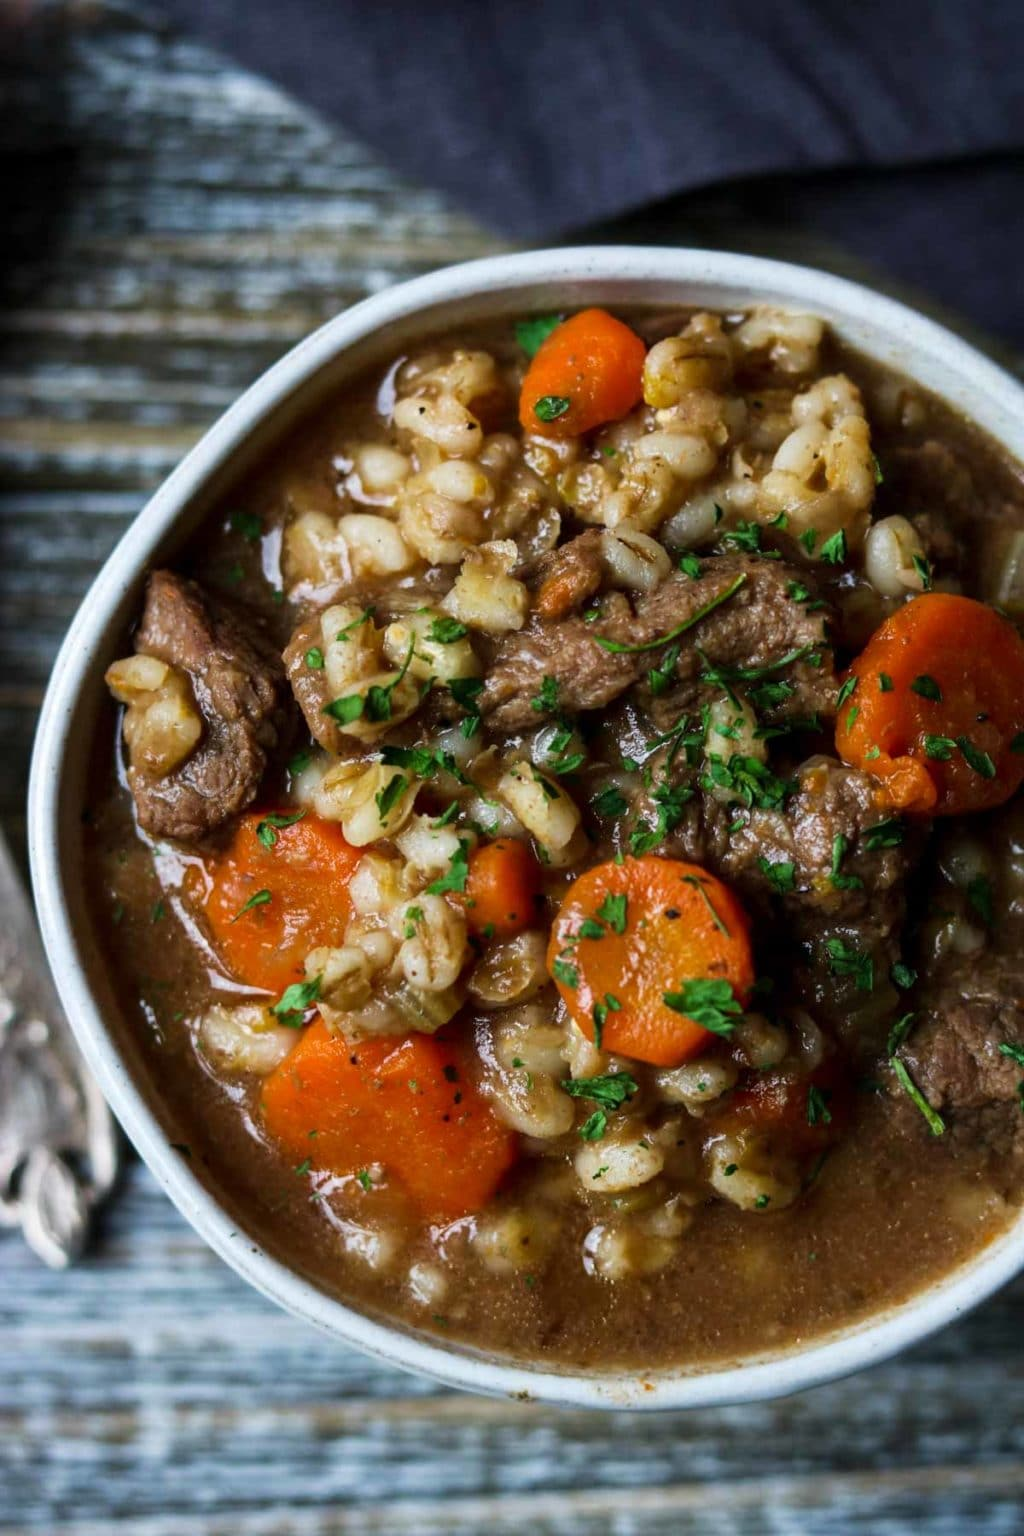 a white bowl full of beef and barley stew on a wooden counter